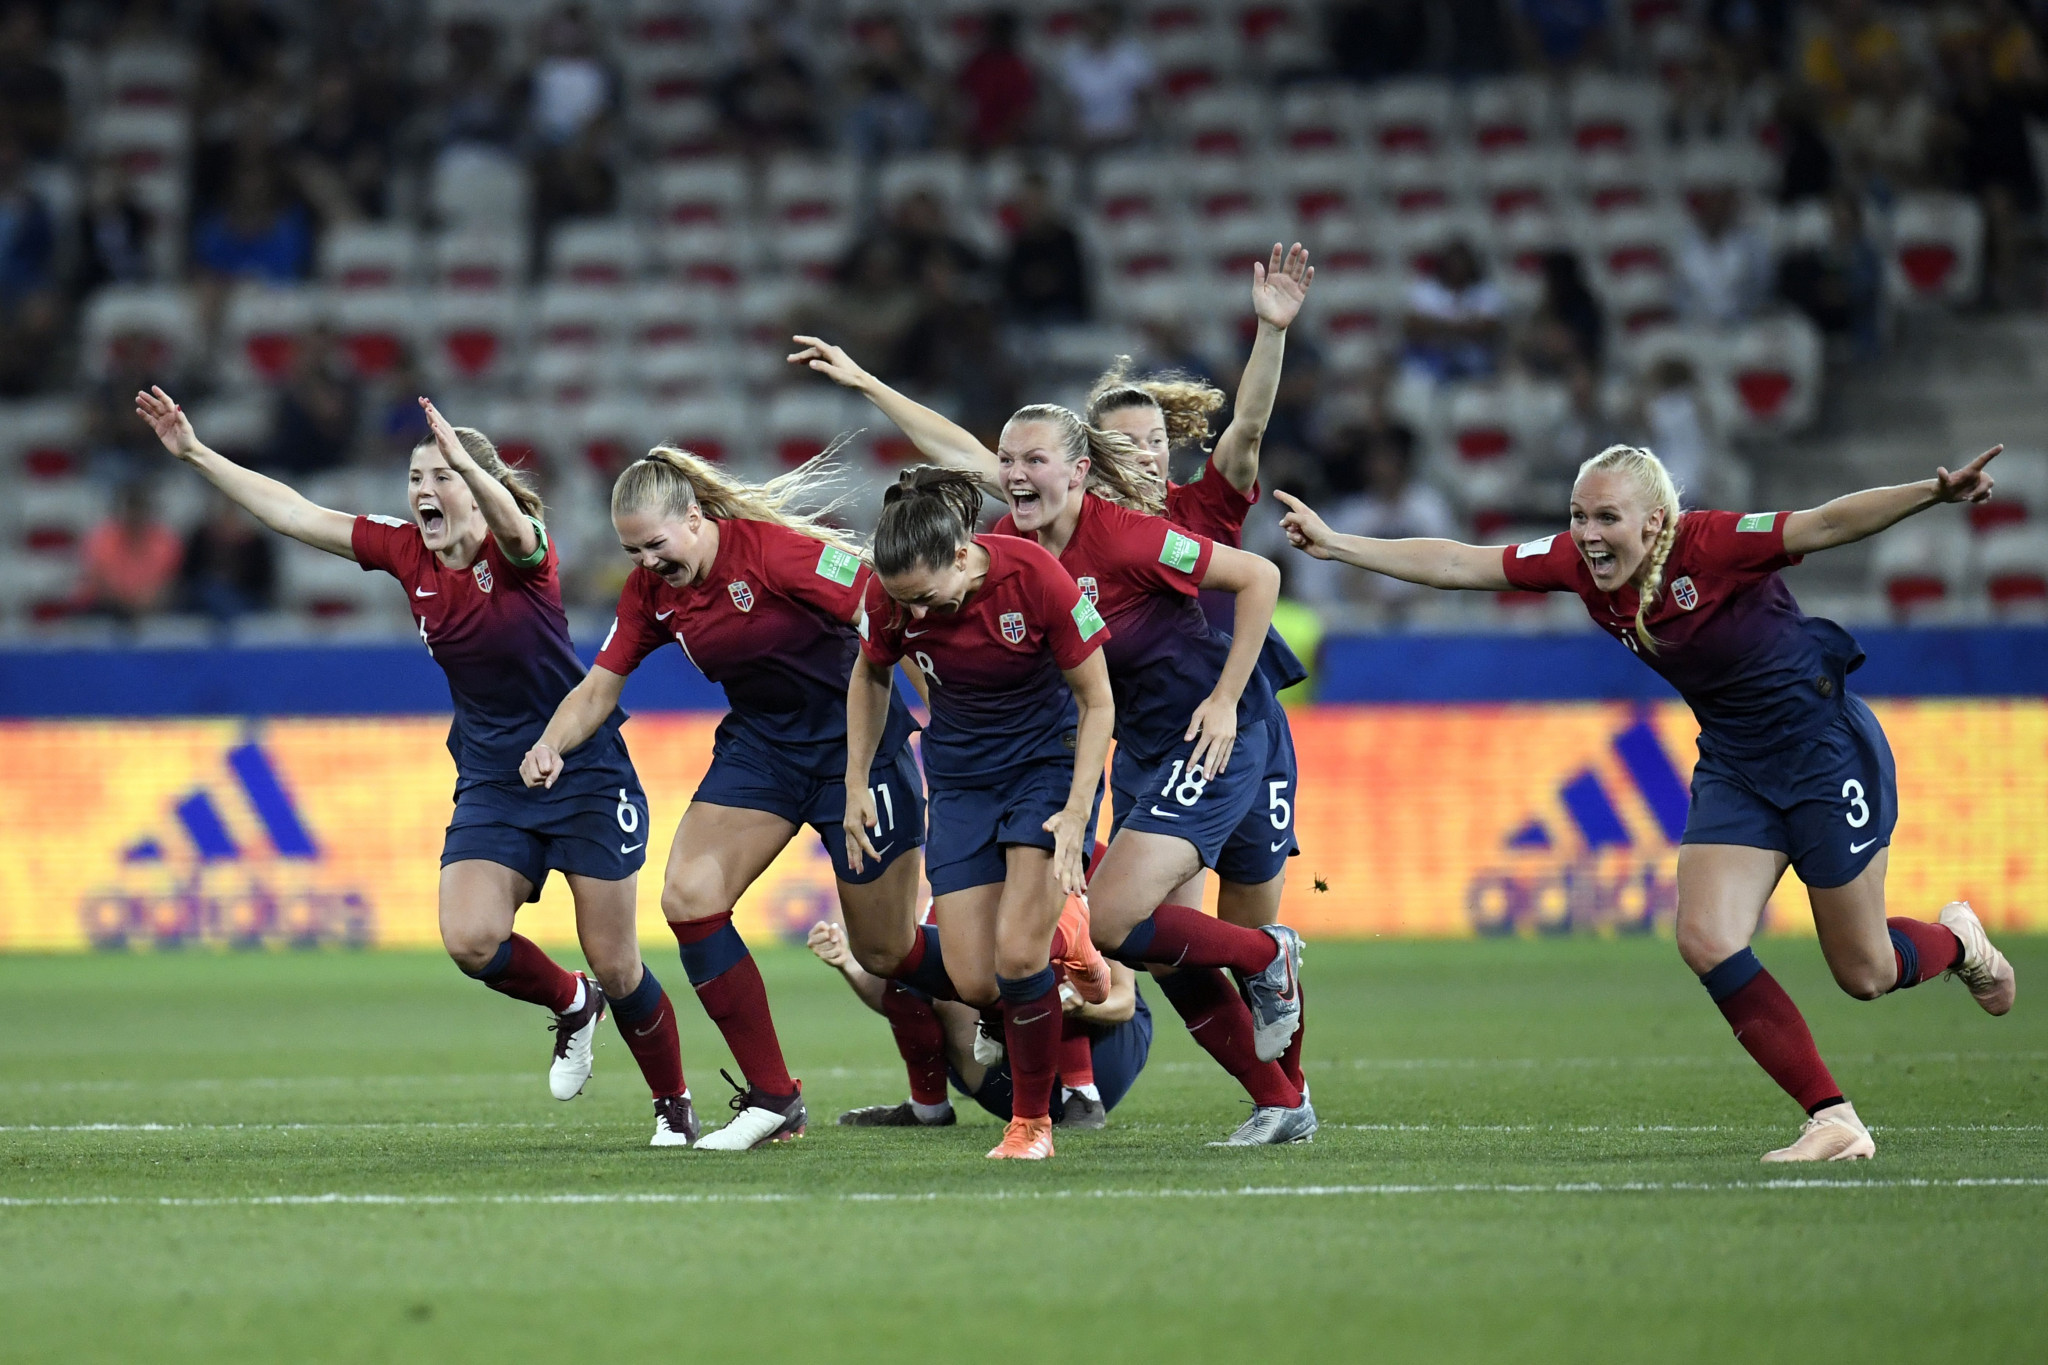 FIFA claim global interest in Women's World Cup sets a new high with records for TV audiences and social media engagement